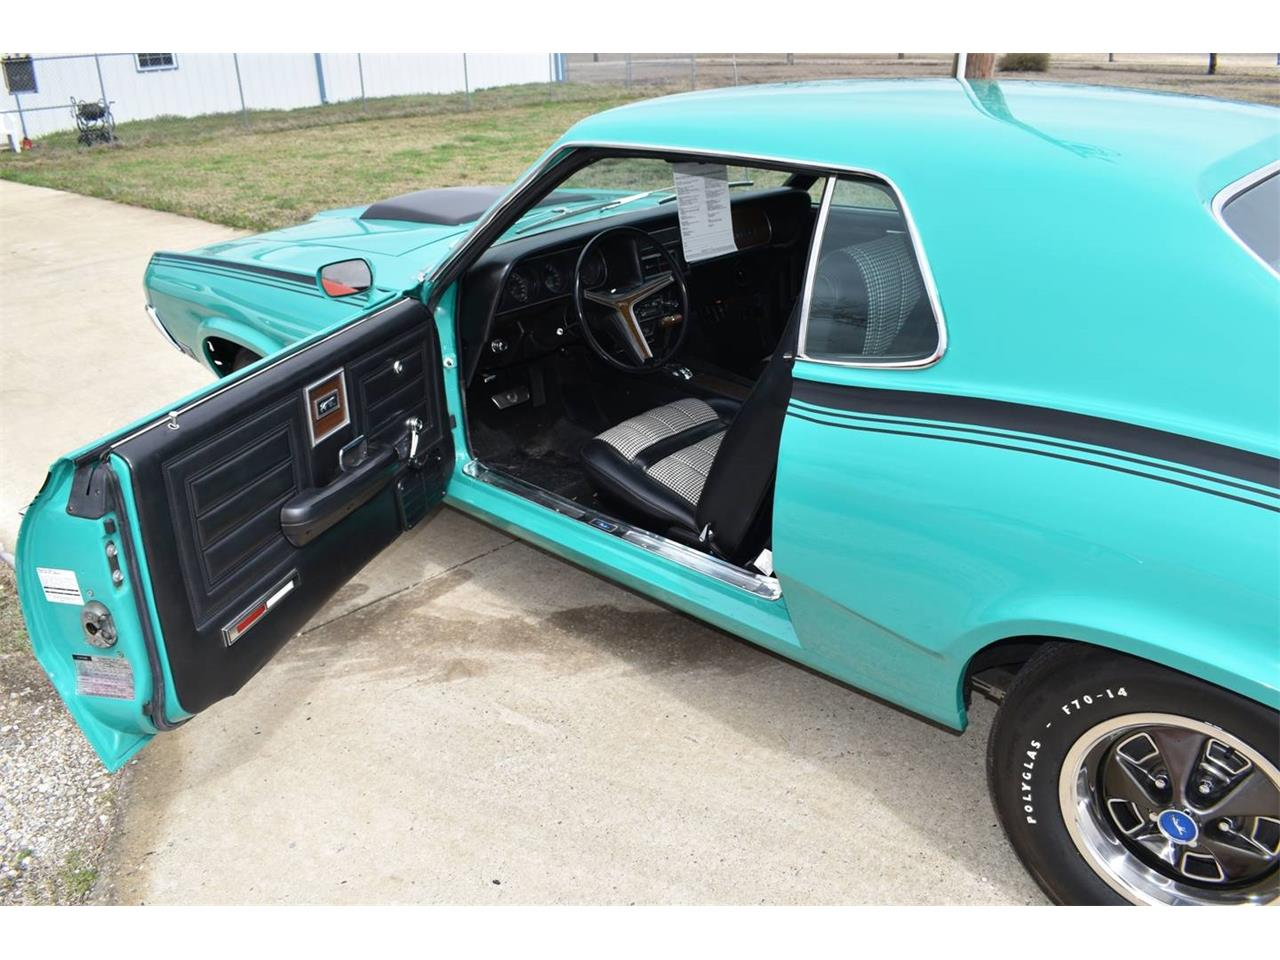 Large Picture of Classic 1970 Mercury Cougar located in Texas Auction Vehicle Offered by Vicari Auction - OI1E